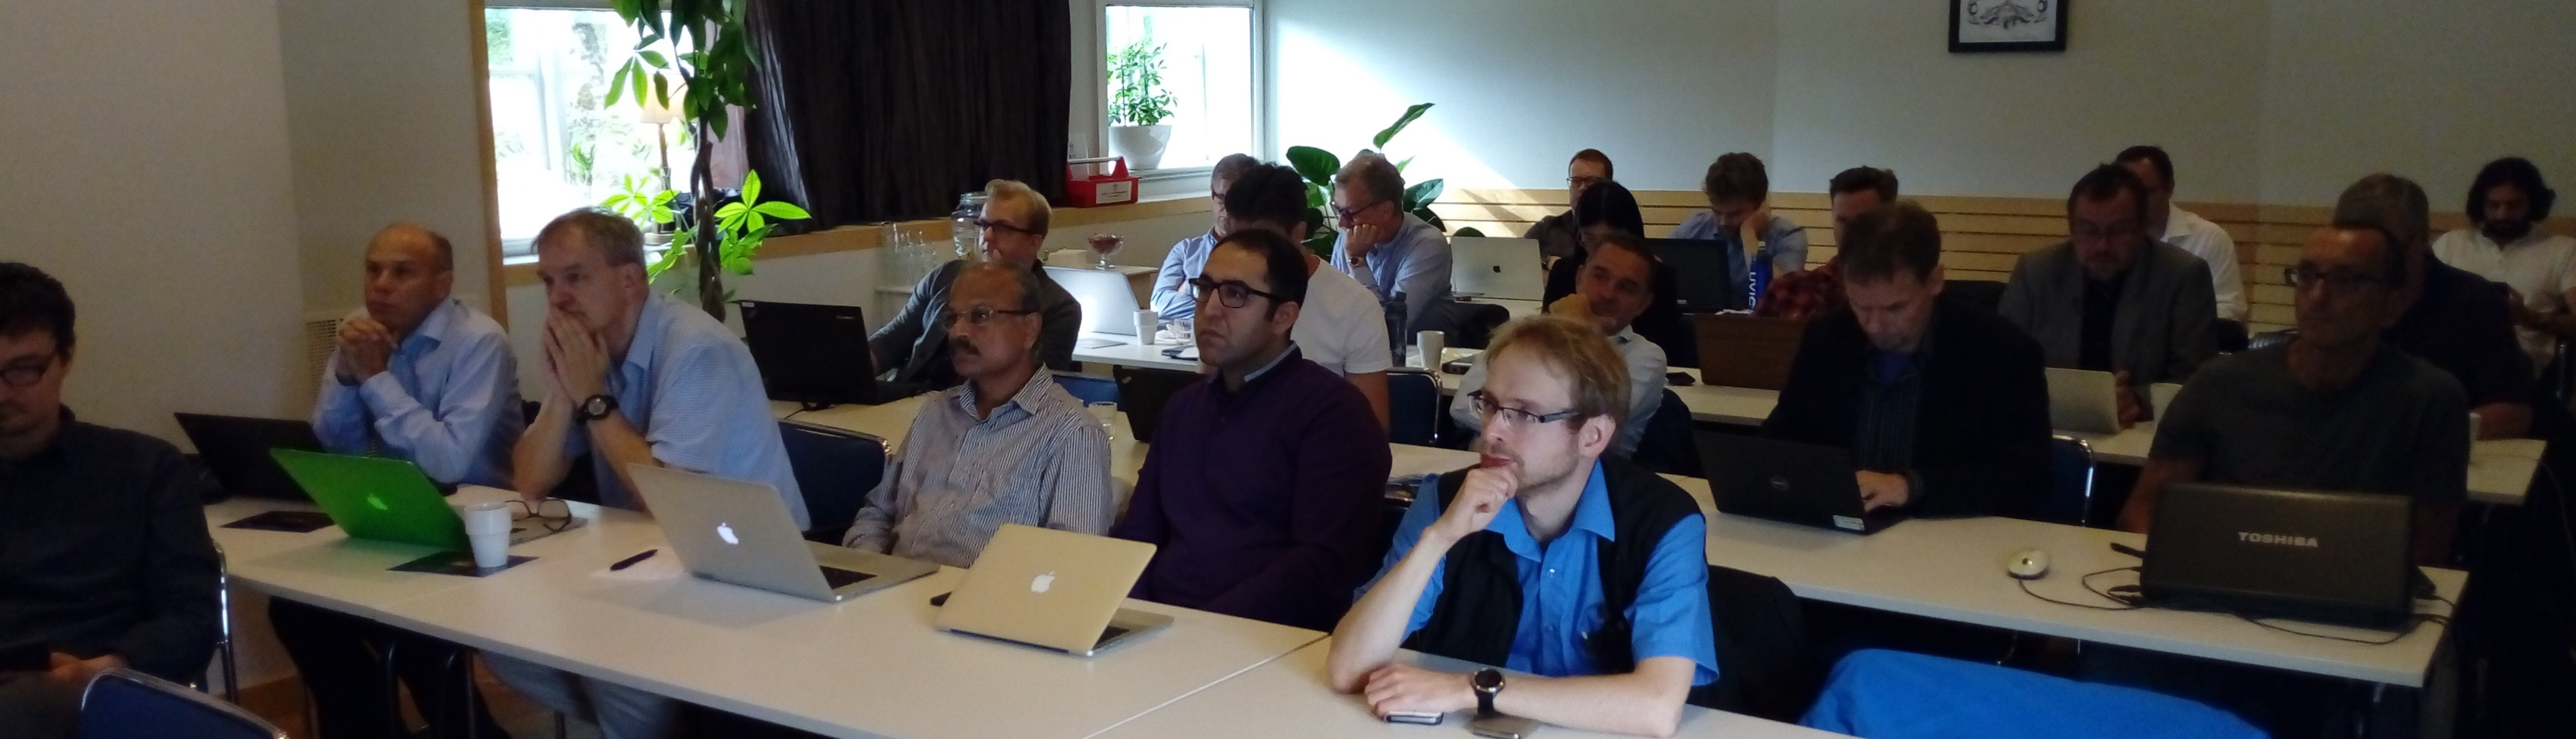 Training in Stockholm with AMASS EU project